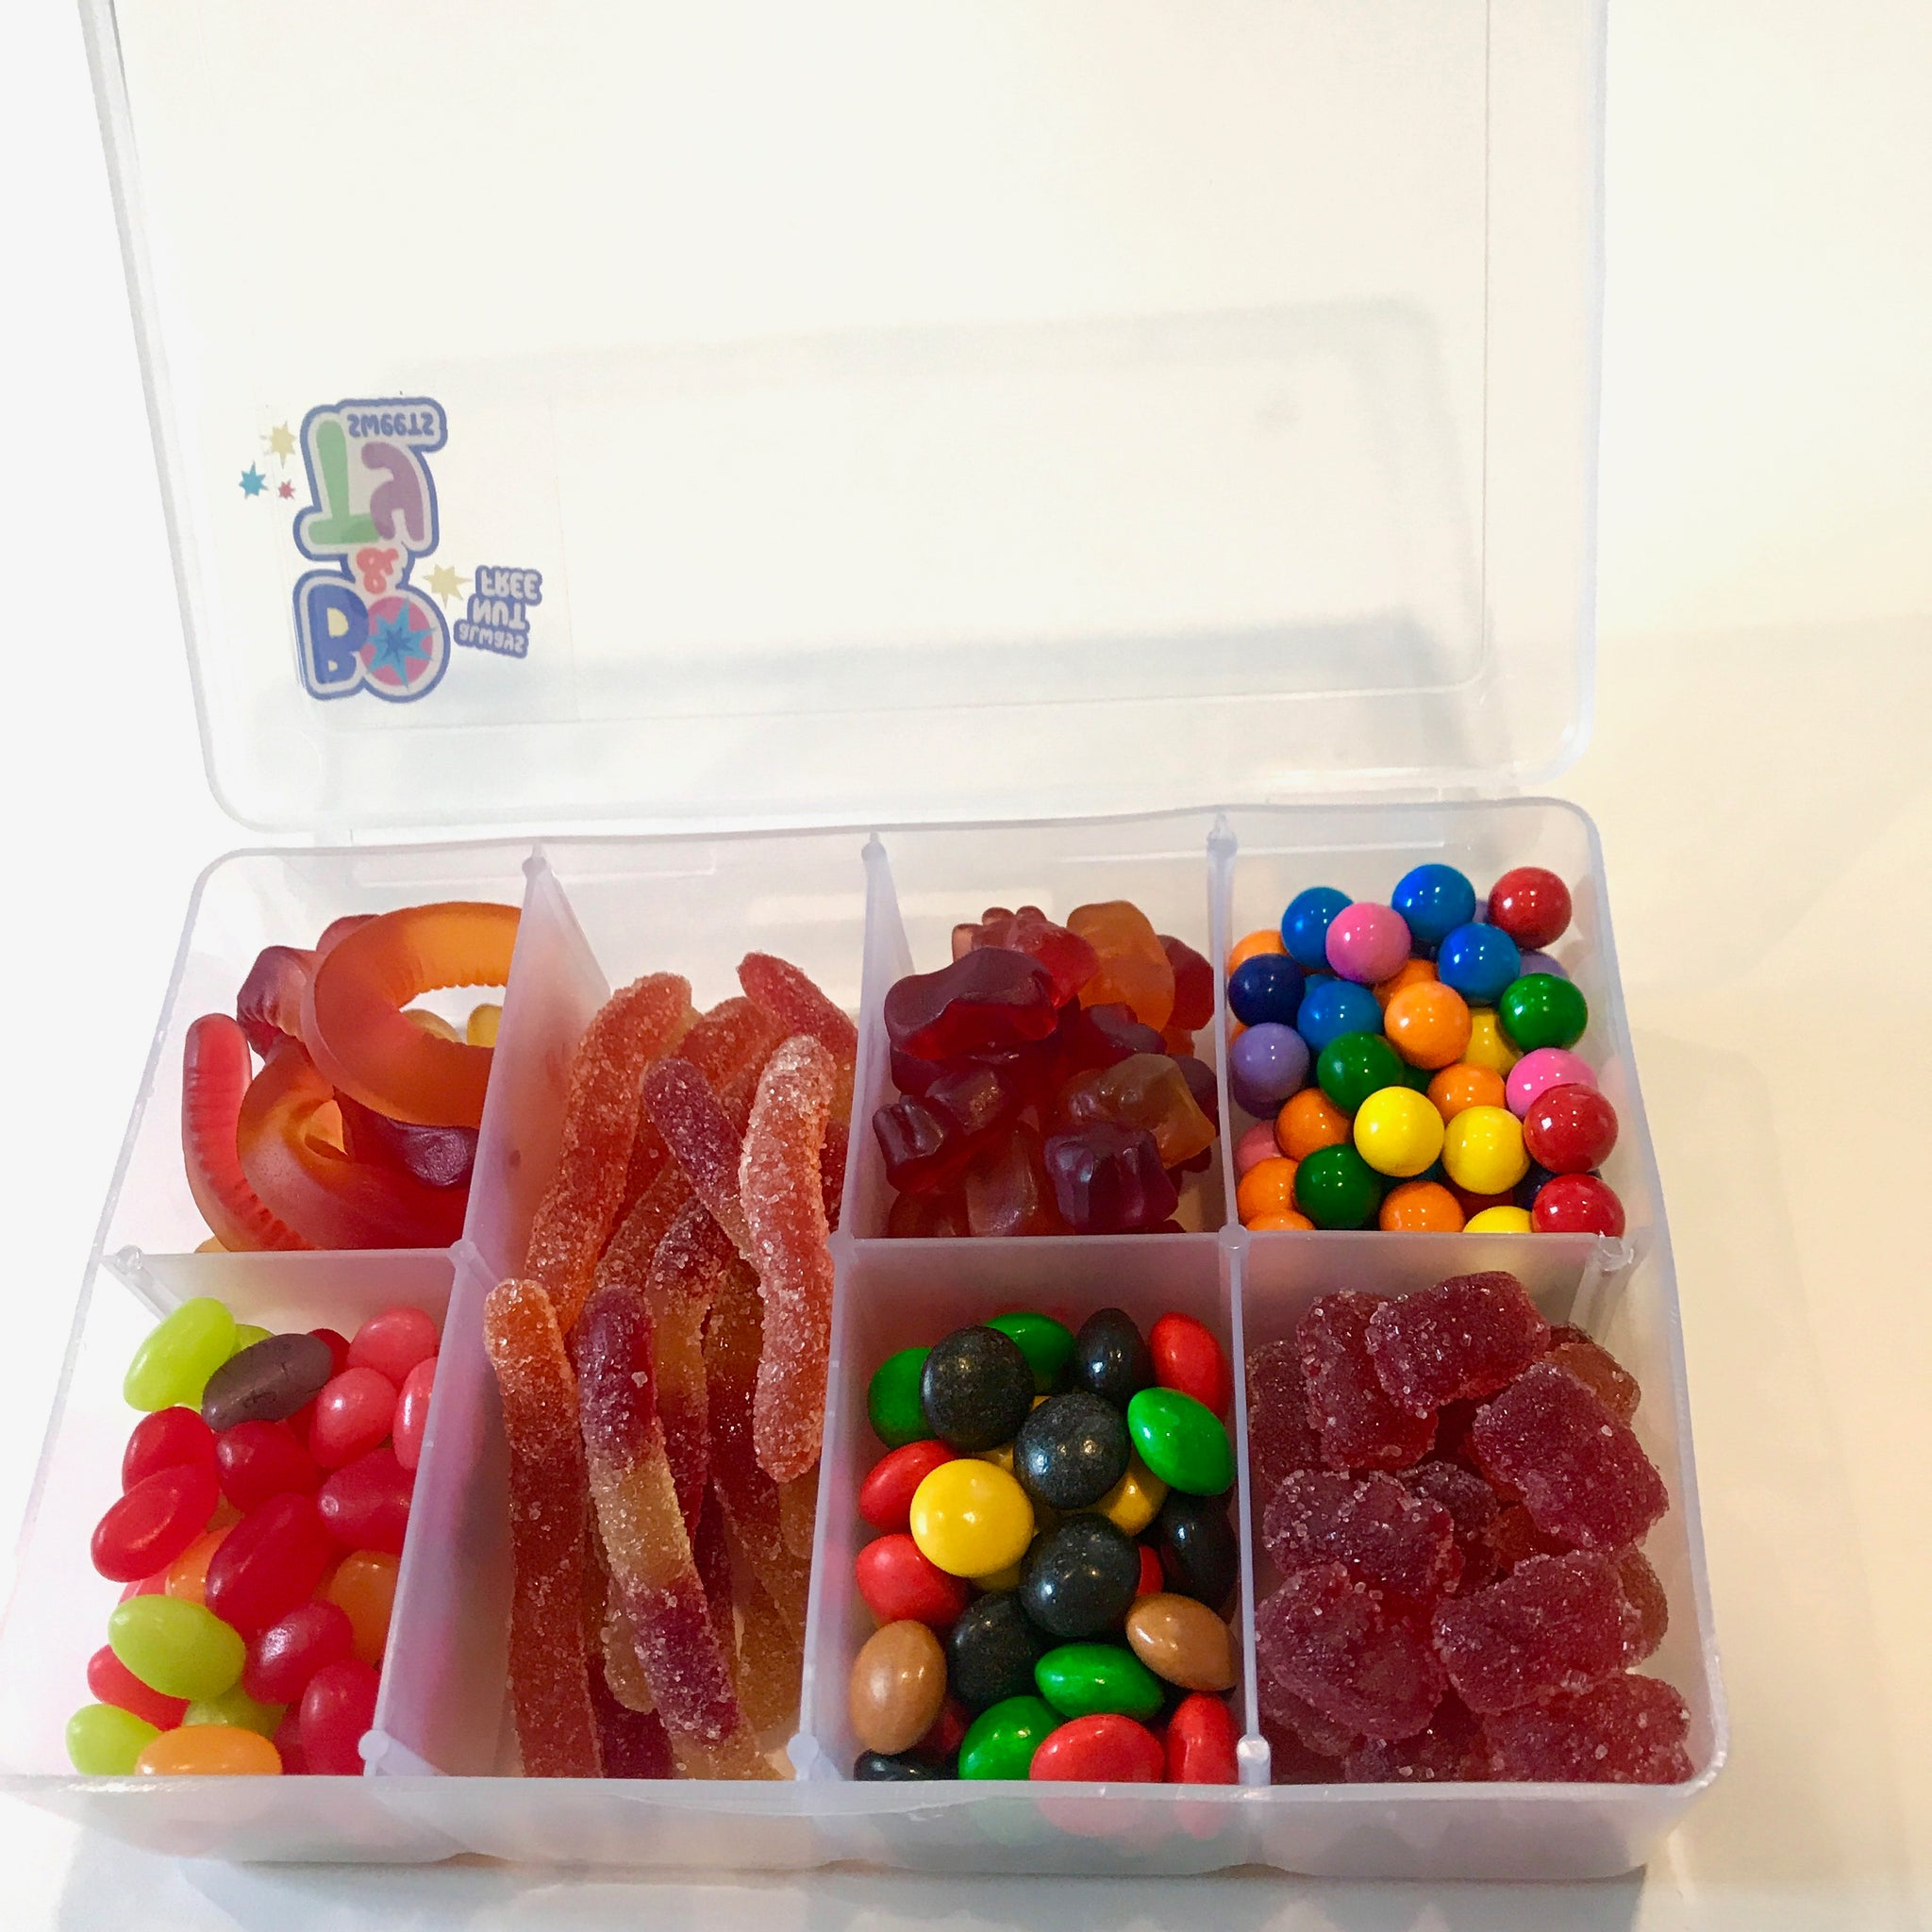 Personalized tackle box for camp bunk gift filled with nut free and peanut free candy and chocolate